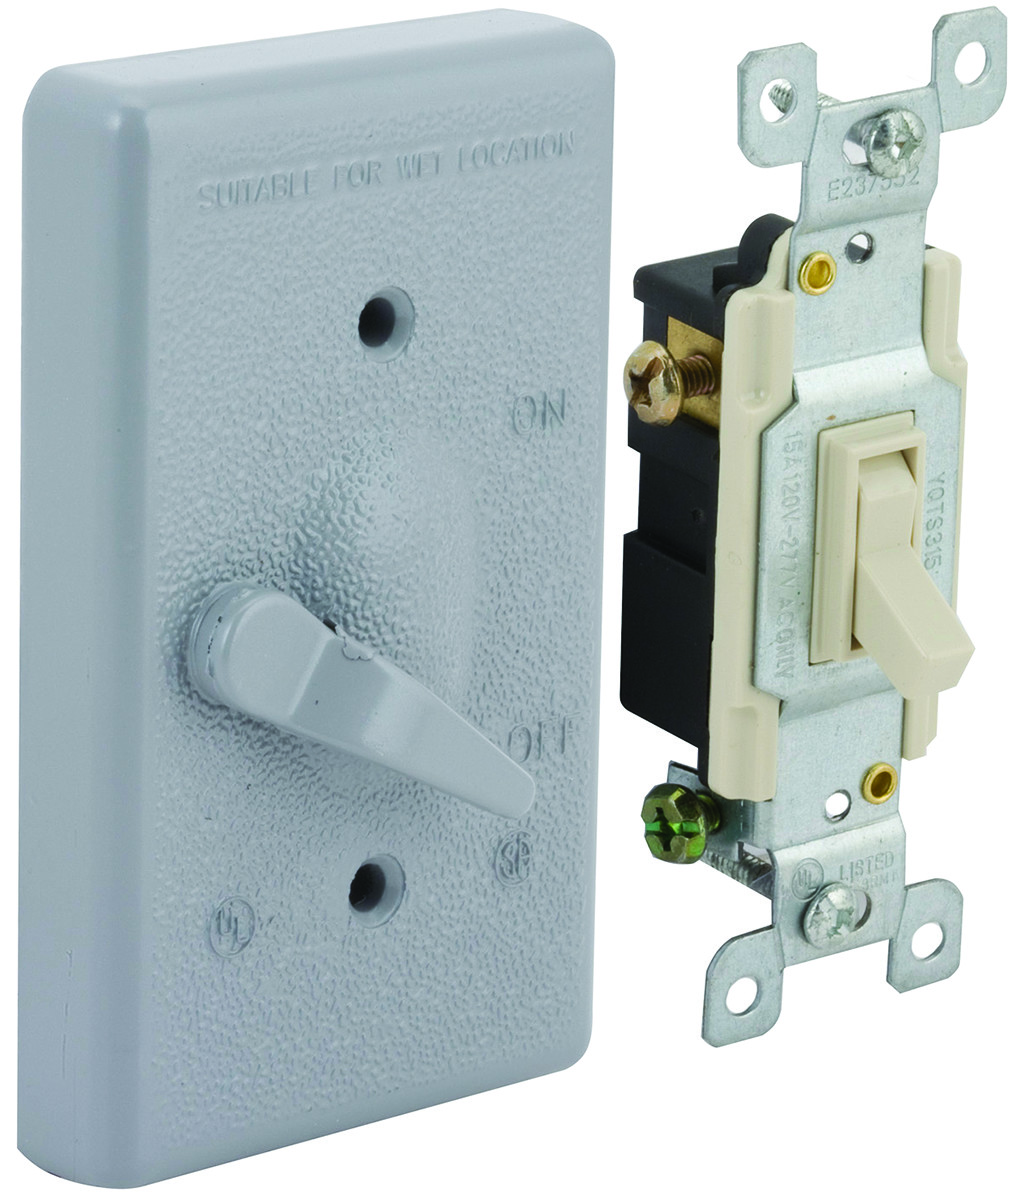 Hubbell Electrical 5141 5 Bell 3way 1gang Switch Lever 050169514153